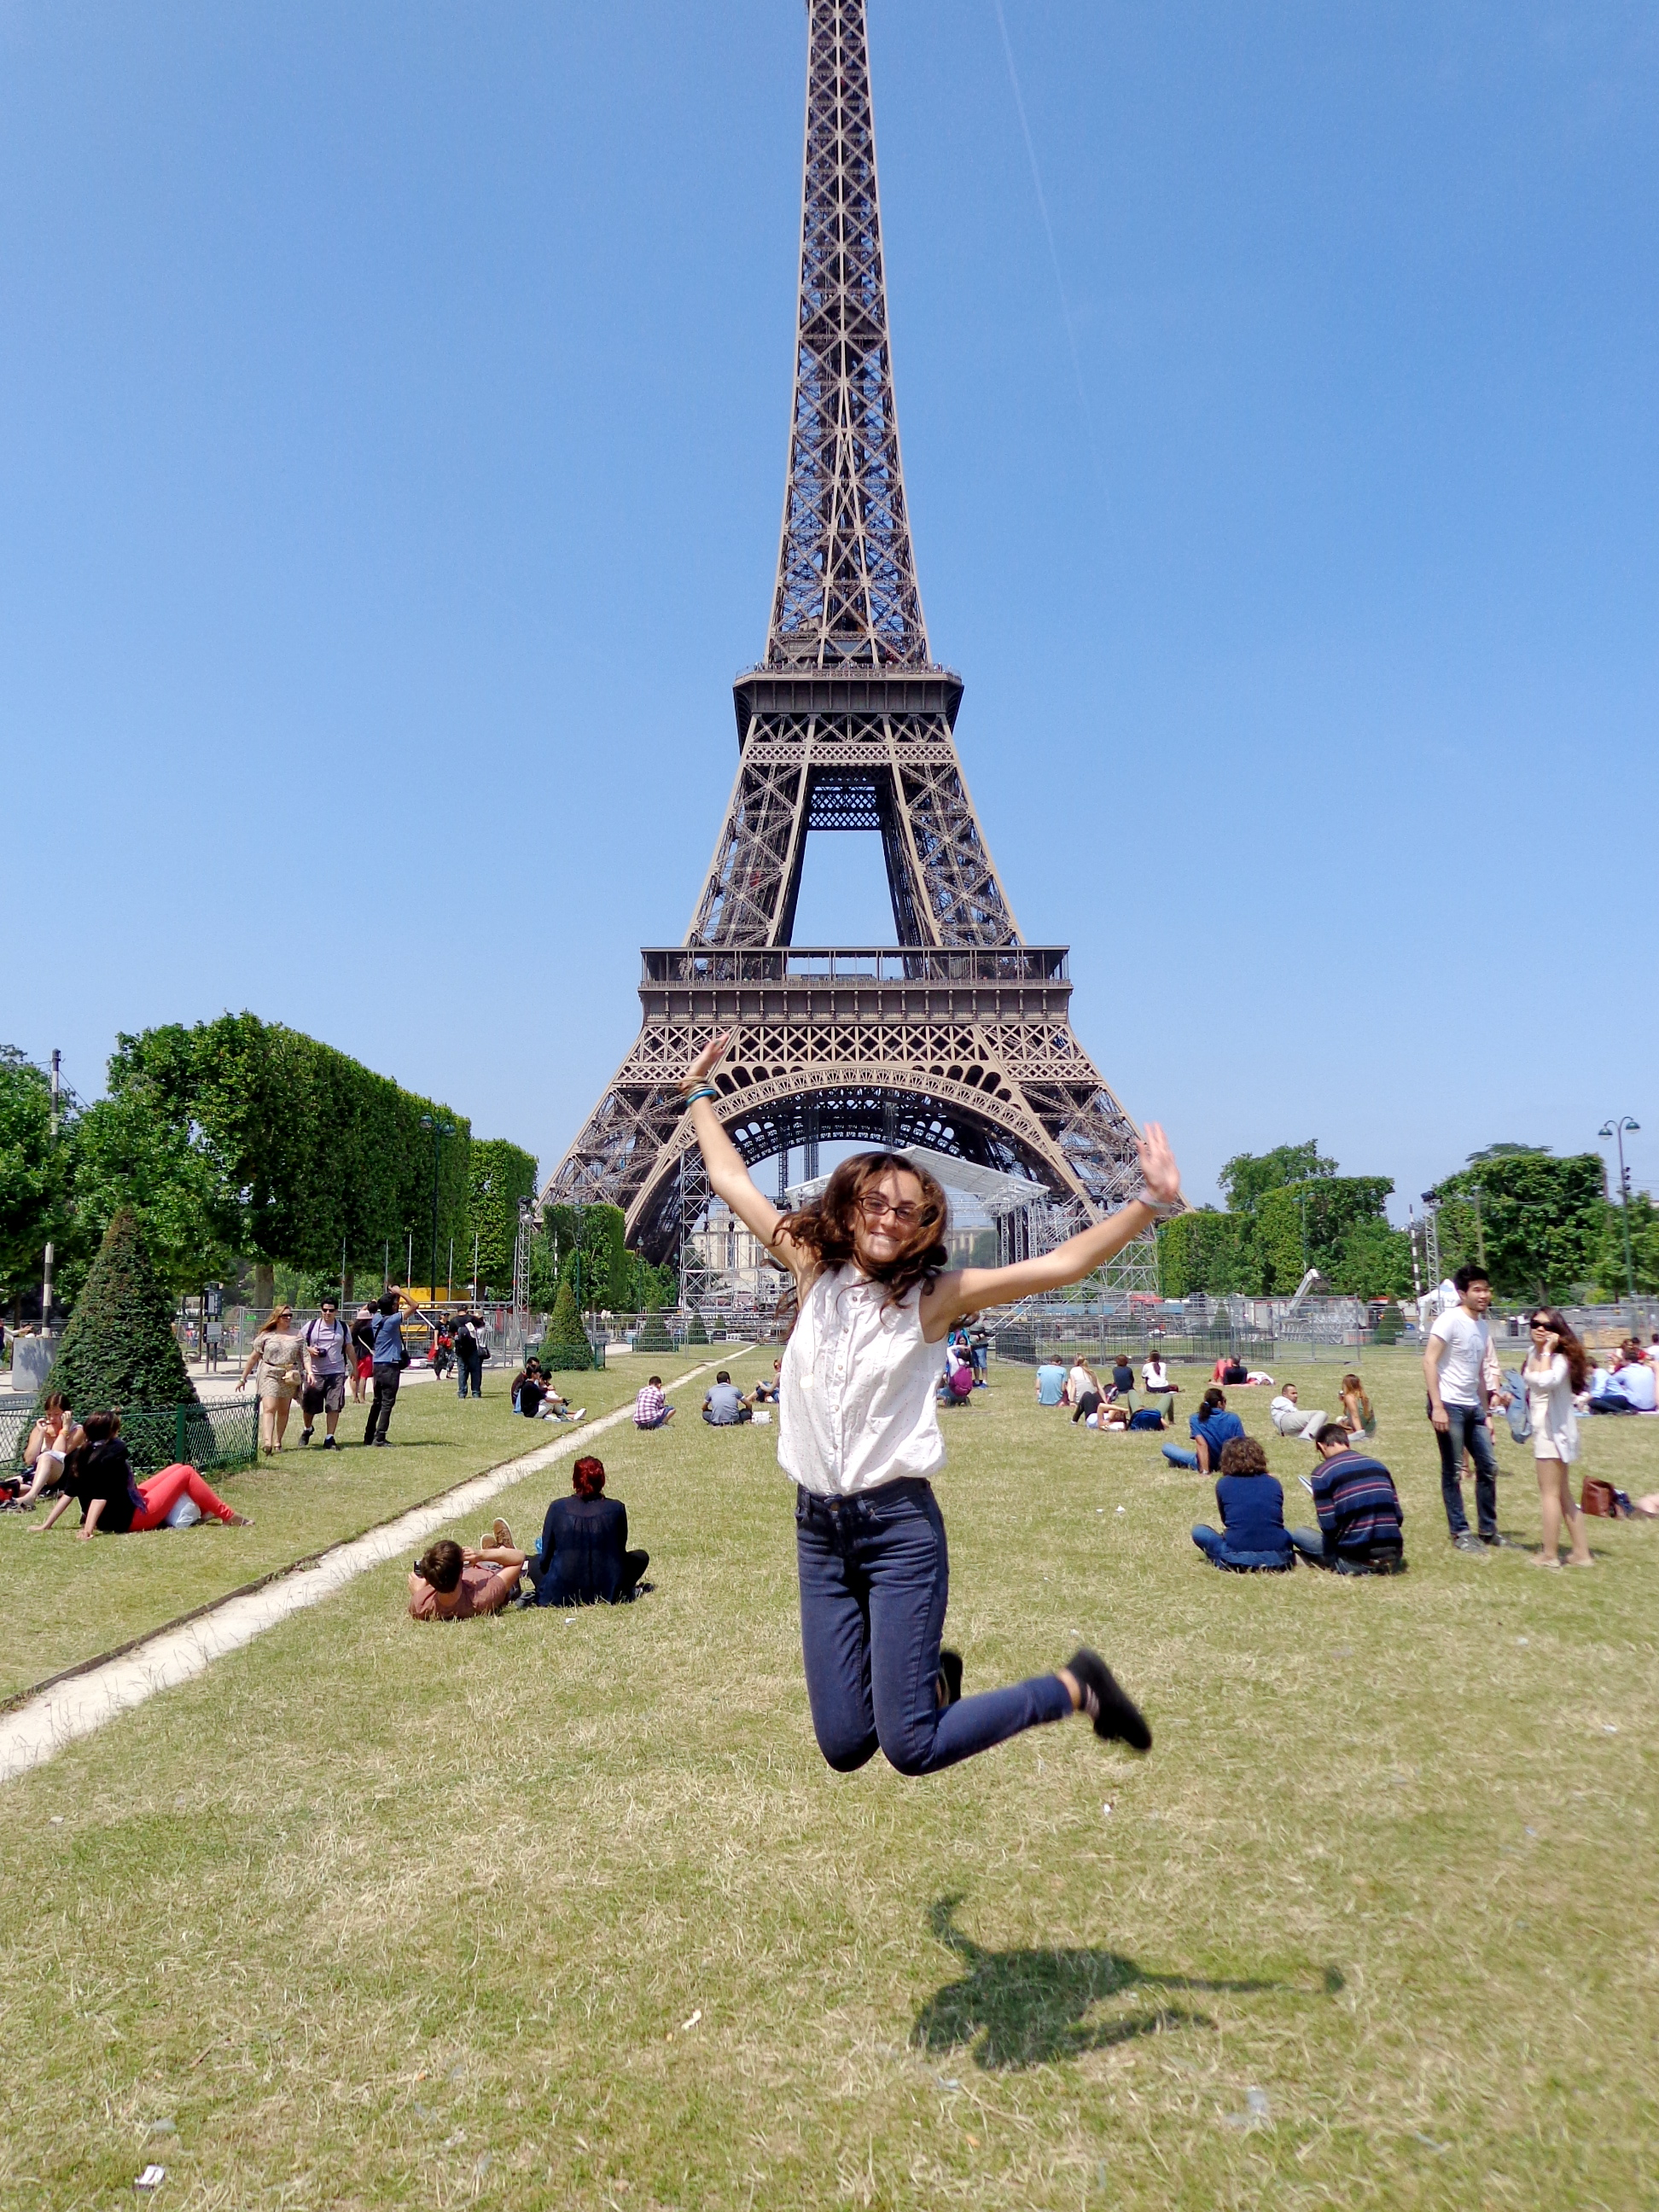 Jumping photo at the Eiffel Tower in Paris